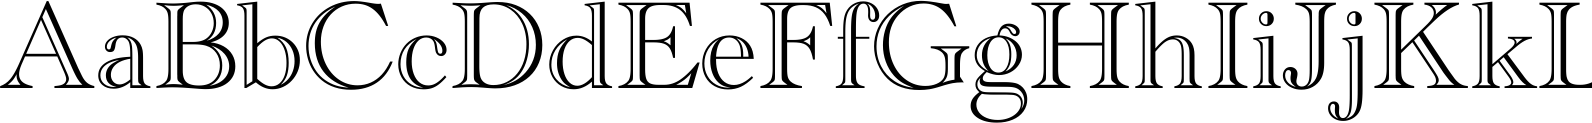 Academy Engraved LET Font